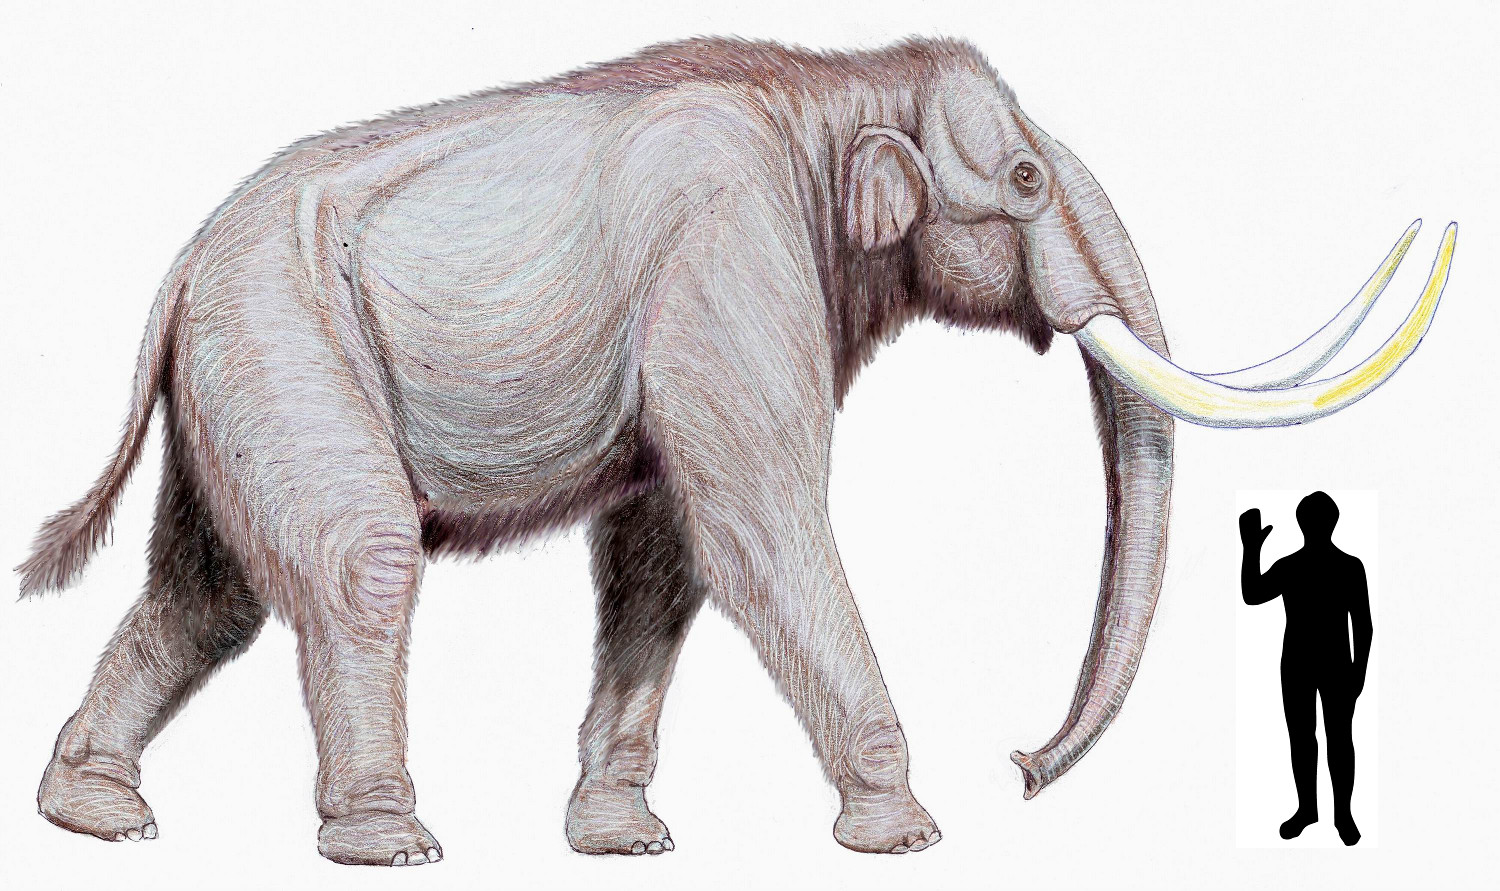 Your Favorite Mammoth/Mastodon - 364.1KB